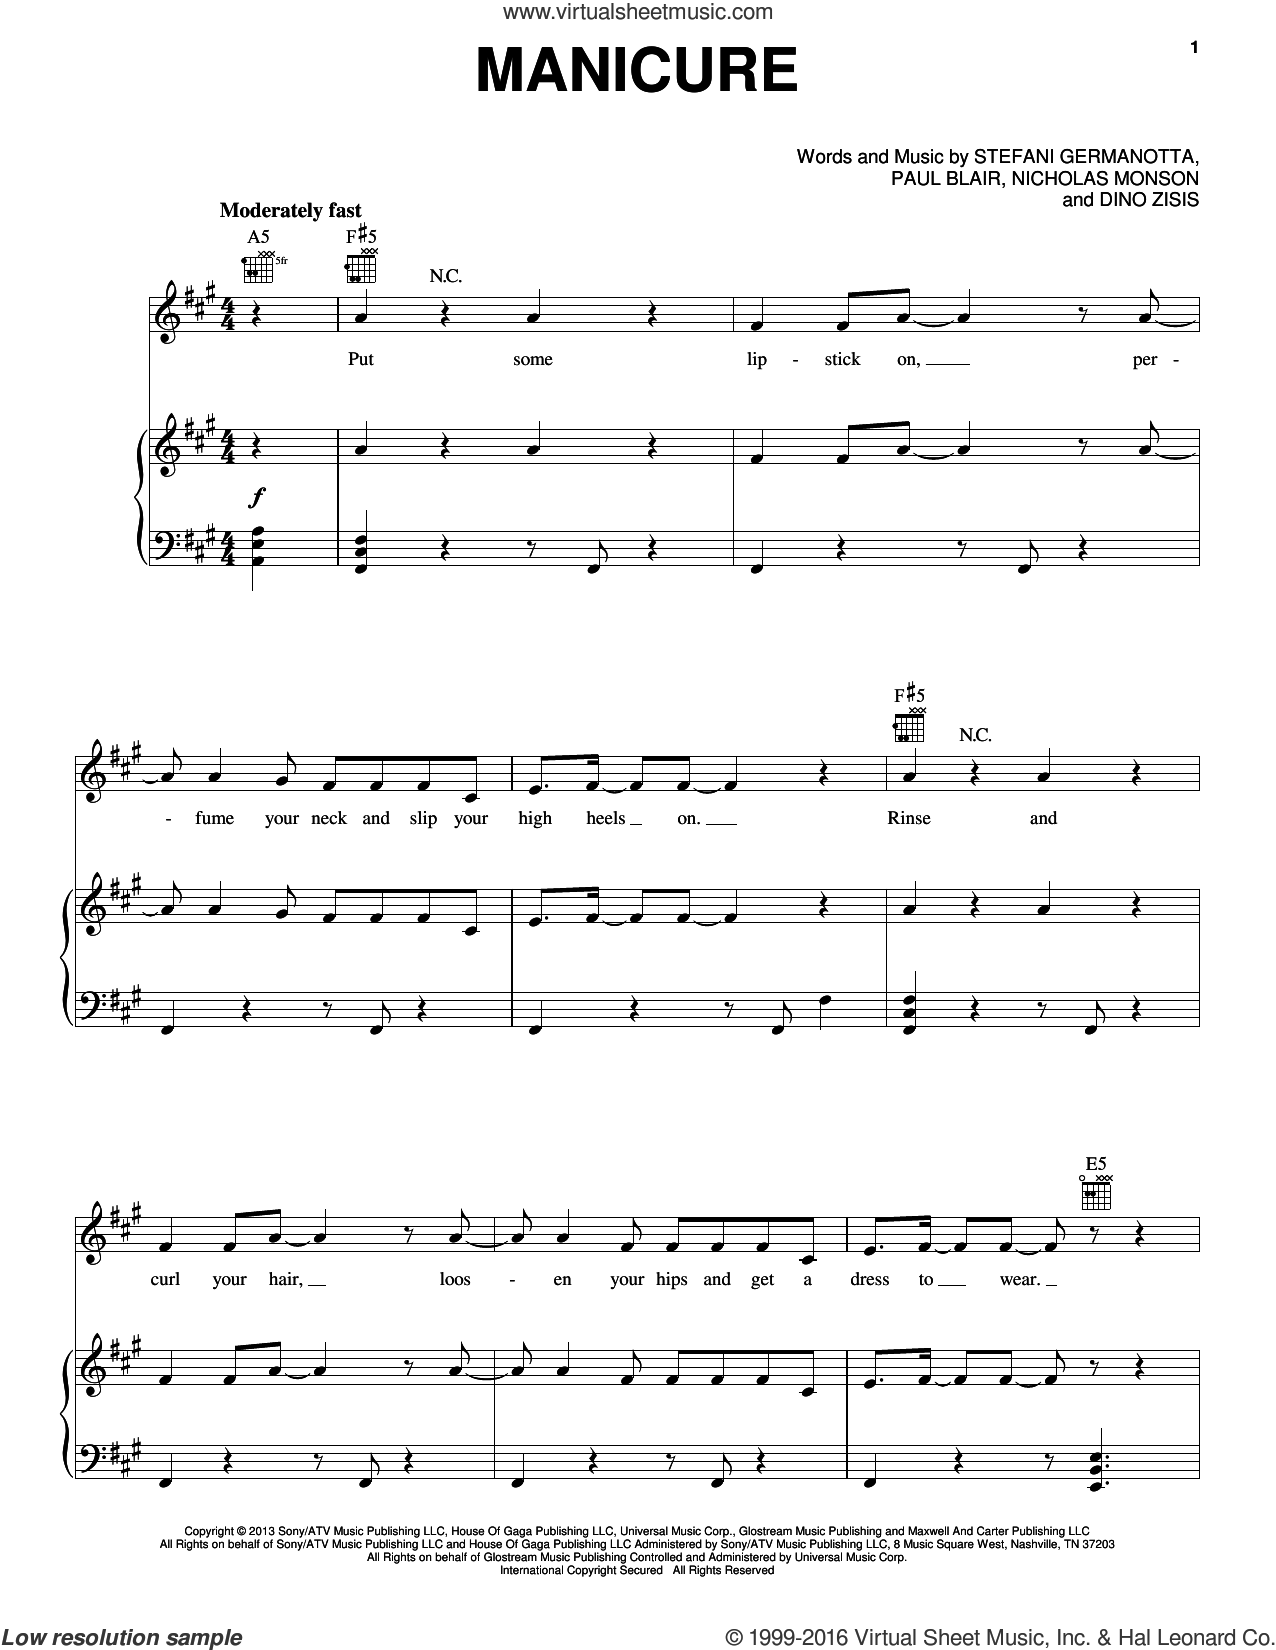 Manicure sheet music for voice, piano or guitar by Lady Gaga, Dino Zisis, Nicholas Monson and Paul Blair, intermediate skill level